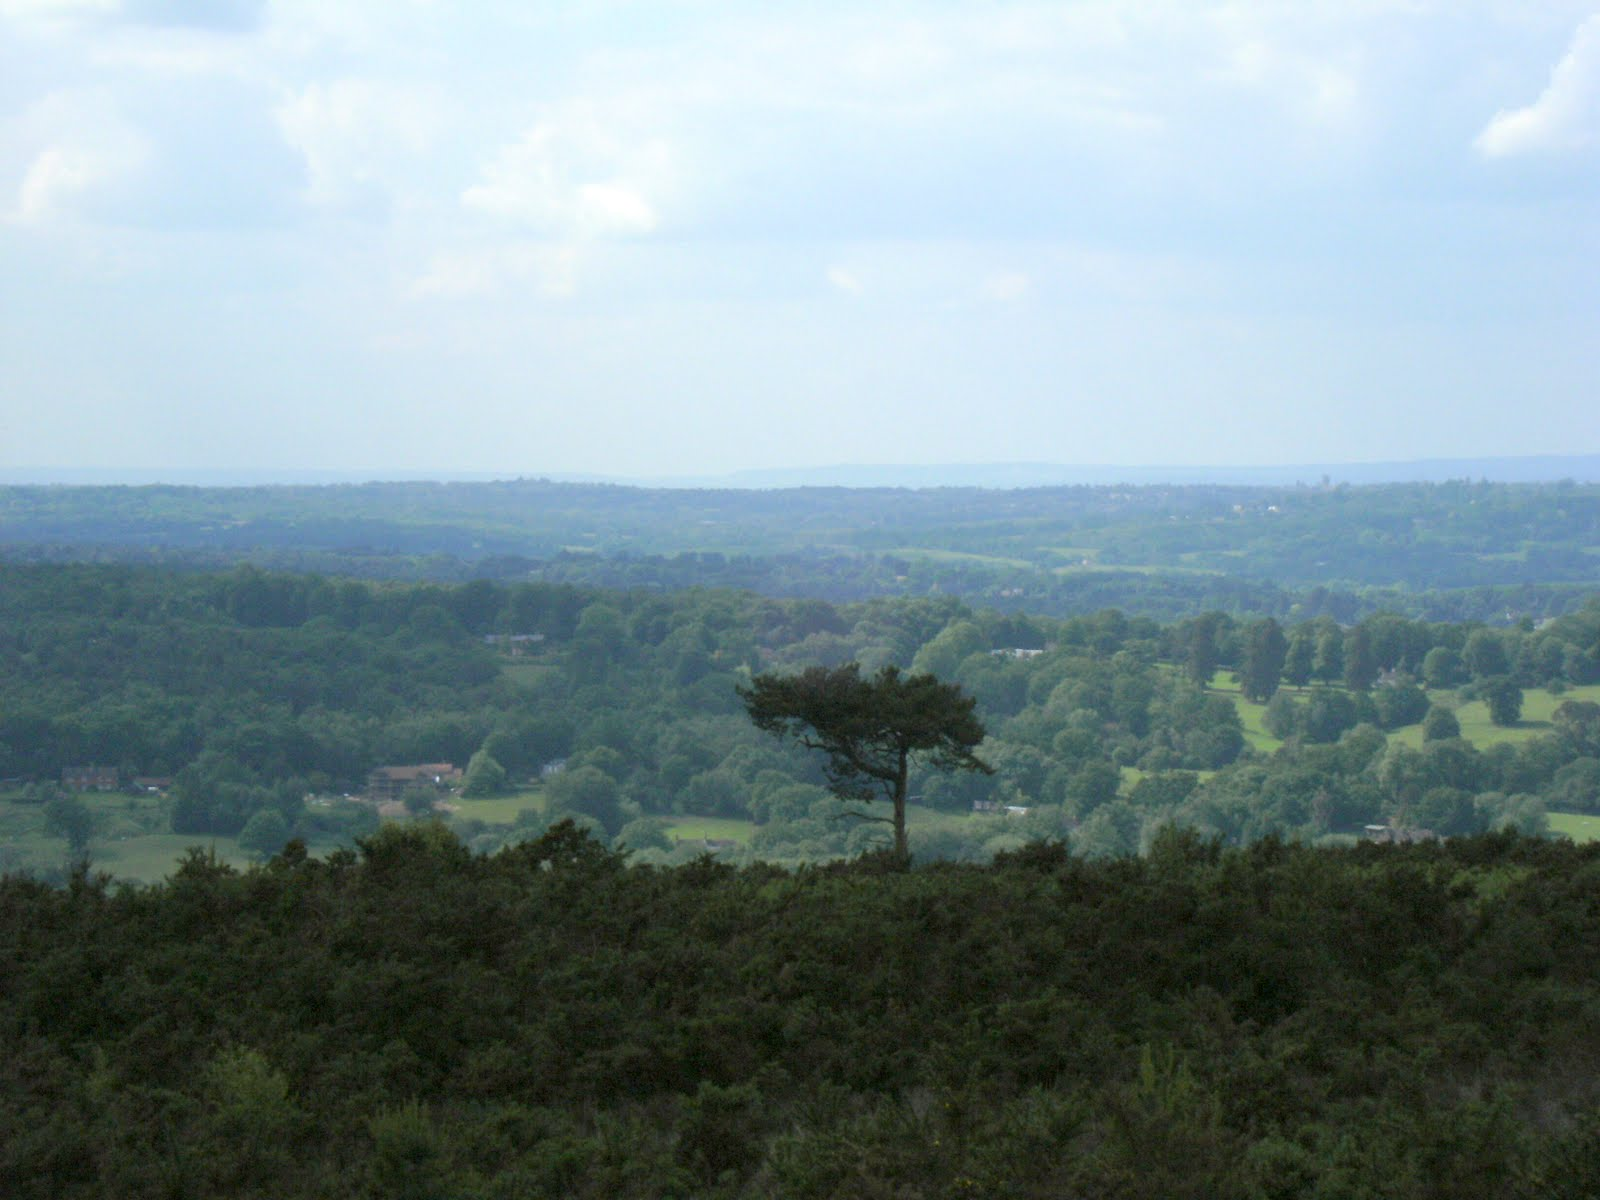 1006120049 The Lone Pine, Ashdown Forest